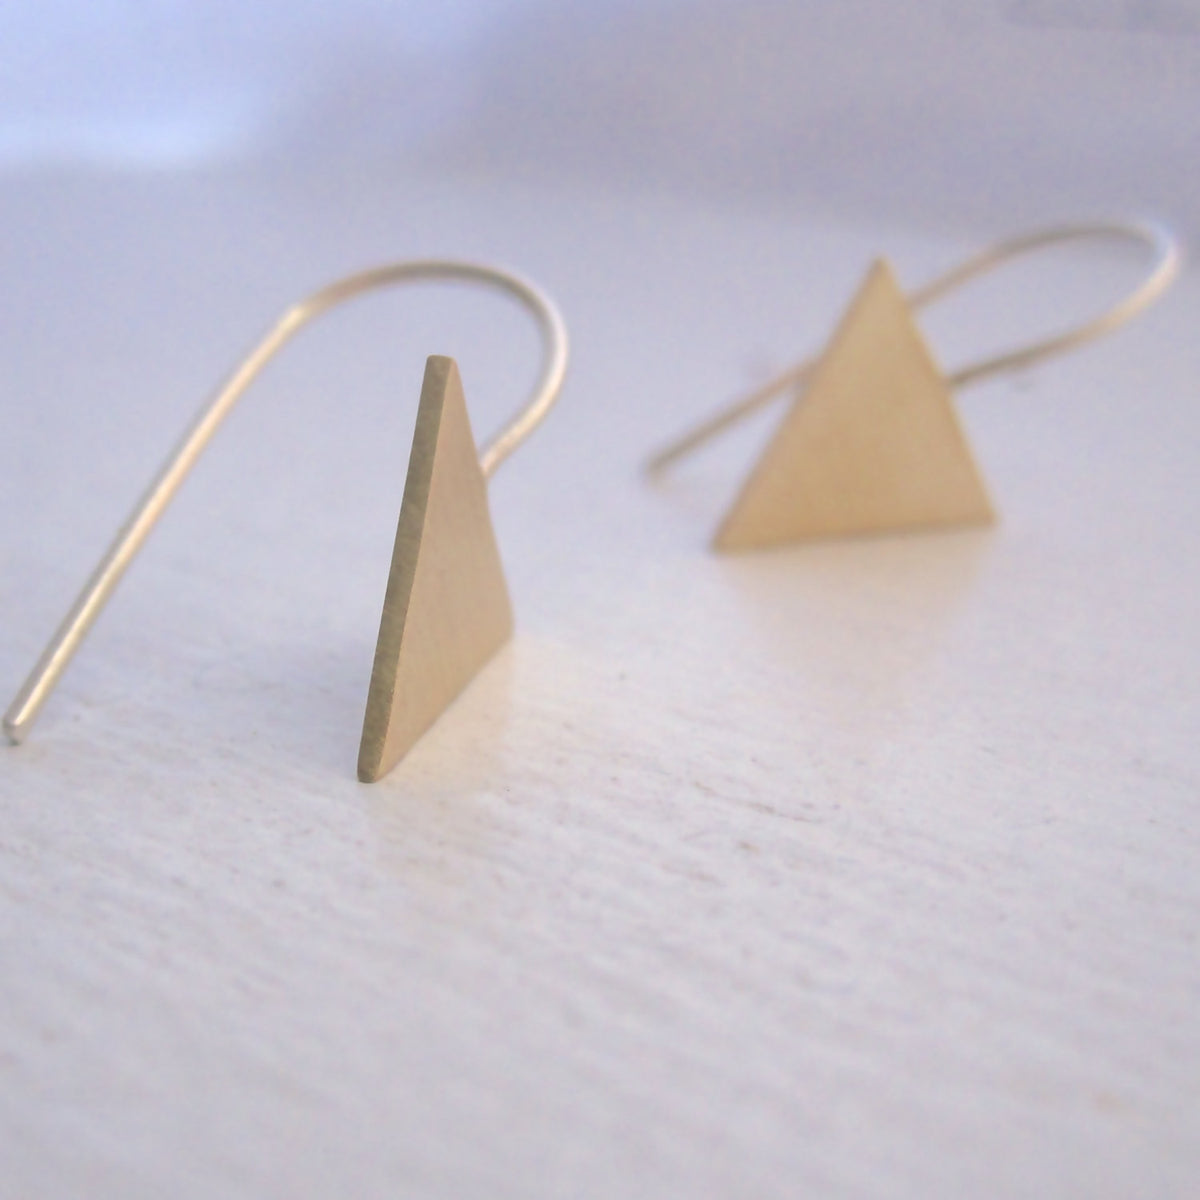 Make A Statement With These Tribal Aztec Arrow Drop Dangle Earrings - 0135 - Virginia Wynne Designs